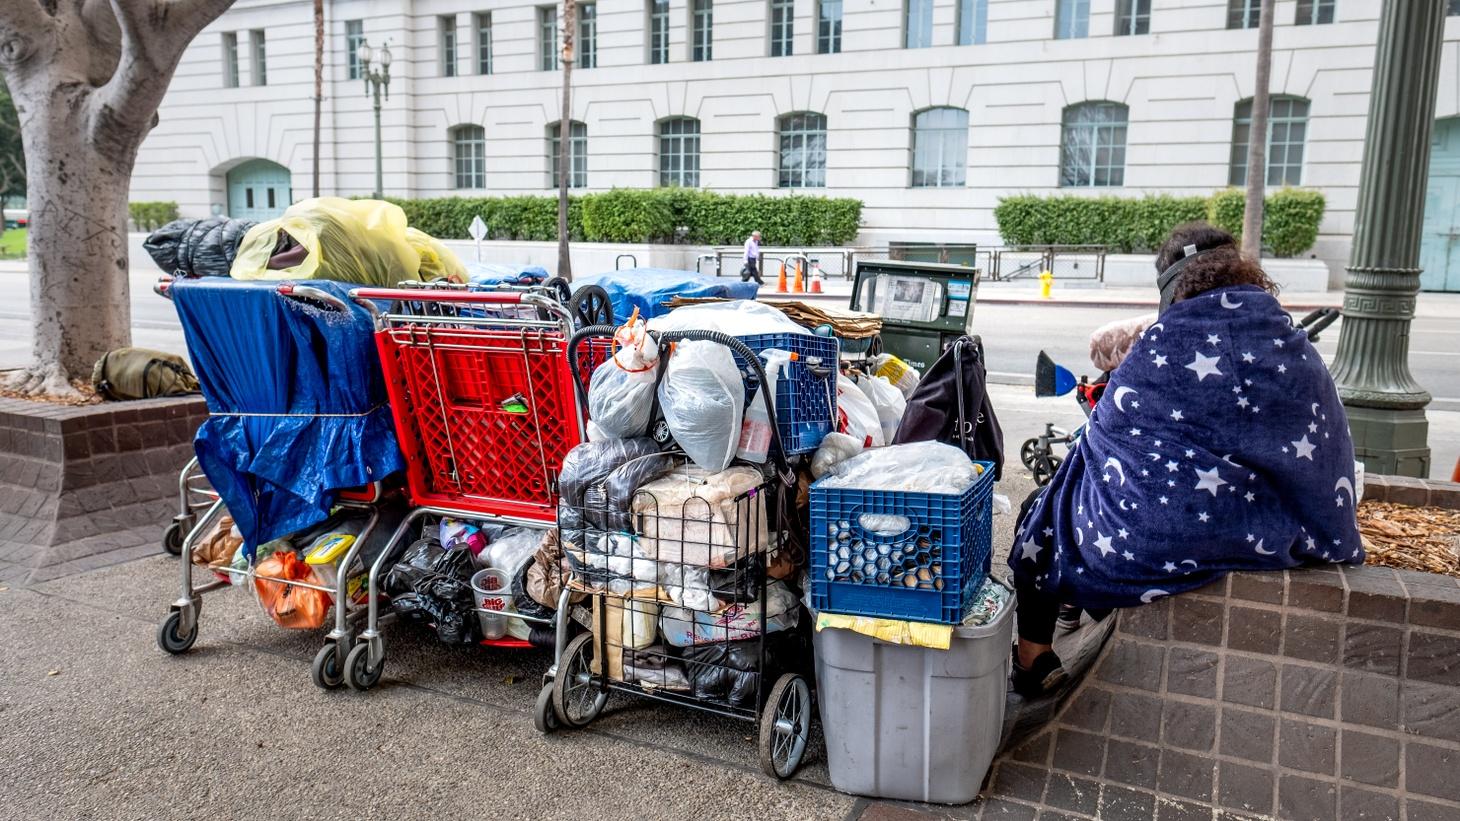 A homeless woman with her belongings across from LA City Hall.